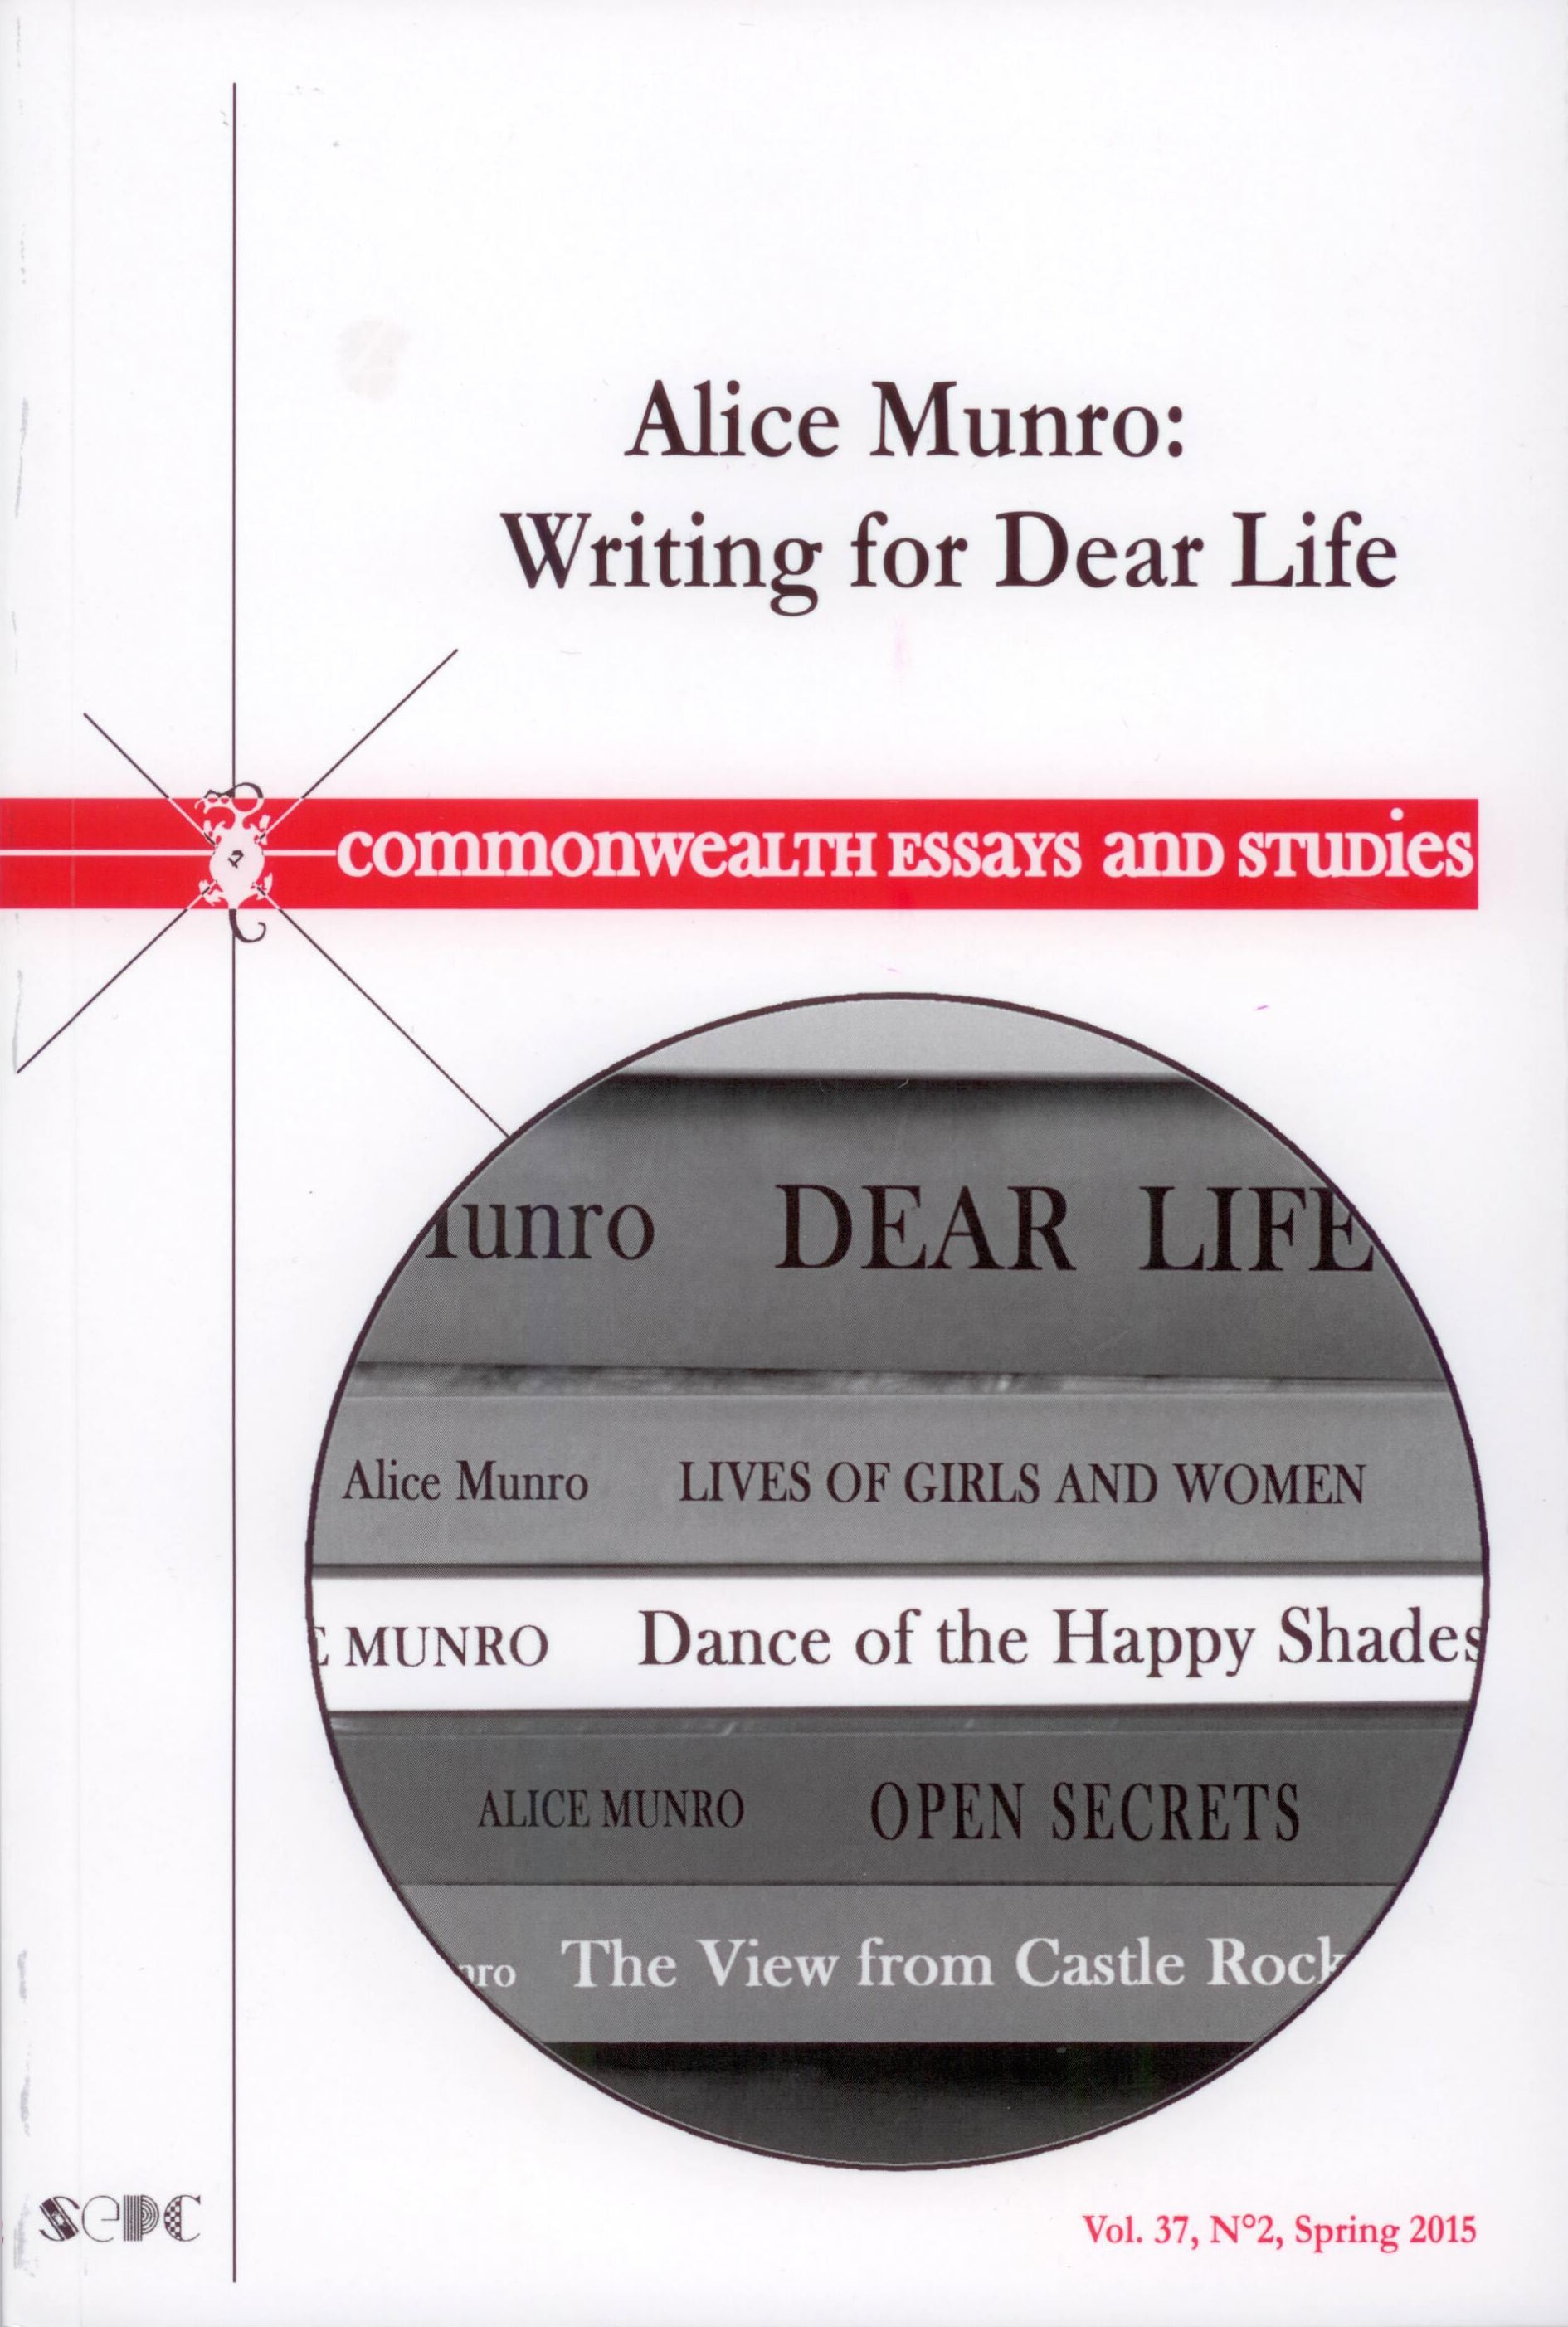 the writing of alice munro essay 2/28/14 alice munro and james purdy are two authors who have opposite writing styles alice munro's stories function as mimetic realism while james purdy's stories.